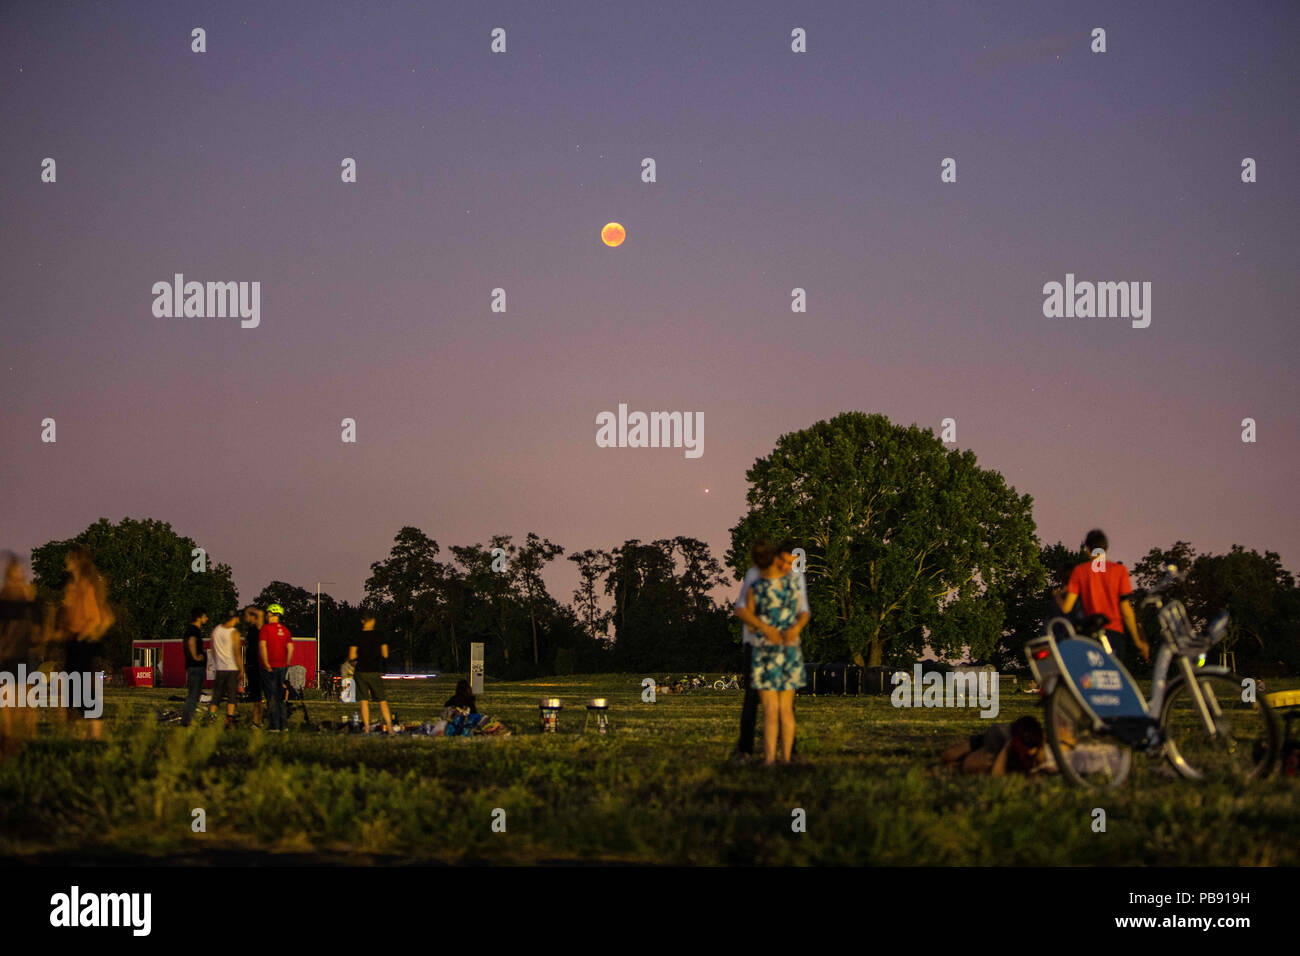 Berlin, Berlin, Germany. 27th July, 2018. People gather at Tempelhofer Feld park to watch the moon glows in a red color during a full lunar eclipse over Berlin, Germany on July 27 2018. The phenomenon also known as 'Blood moon' was well observed all across Germany when the moon was covered by Earth's shade. It is also reported that it will be the longest total lunar eclipse of the 21st century. Credit: Omer Messinger/ZUMA Wire/Alamy Live News - Stock Image